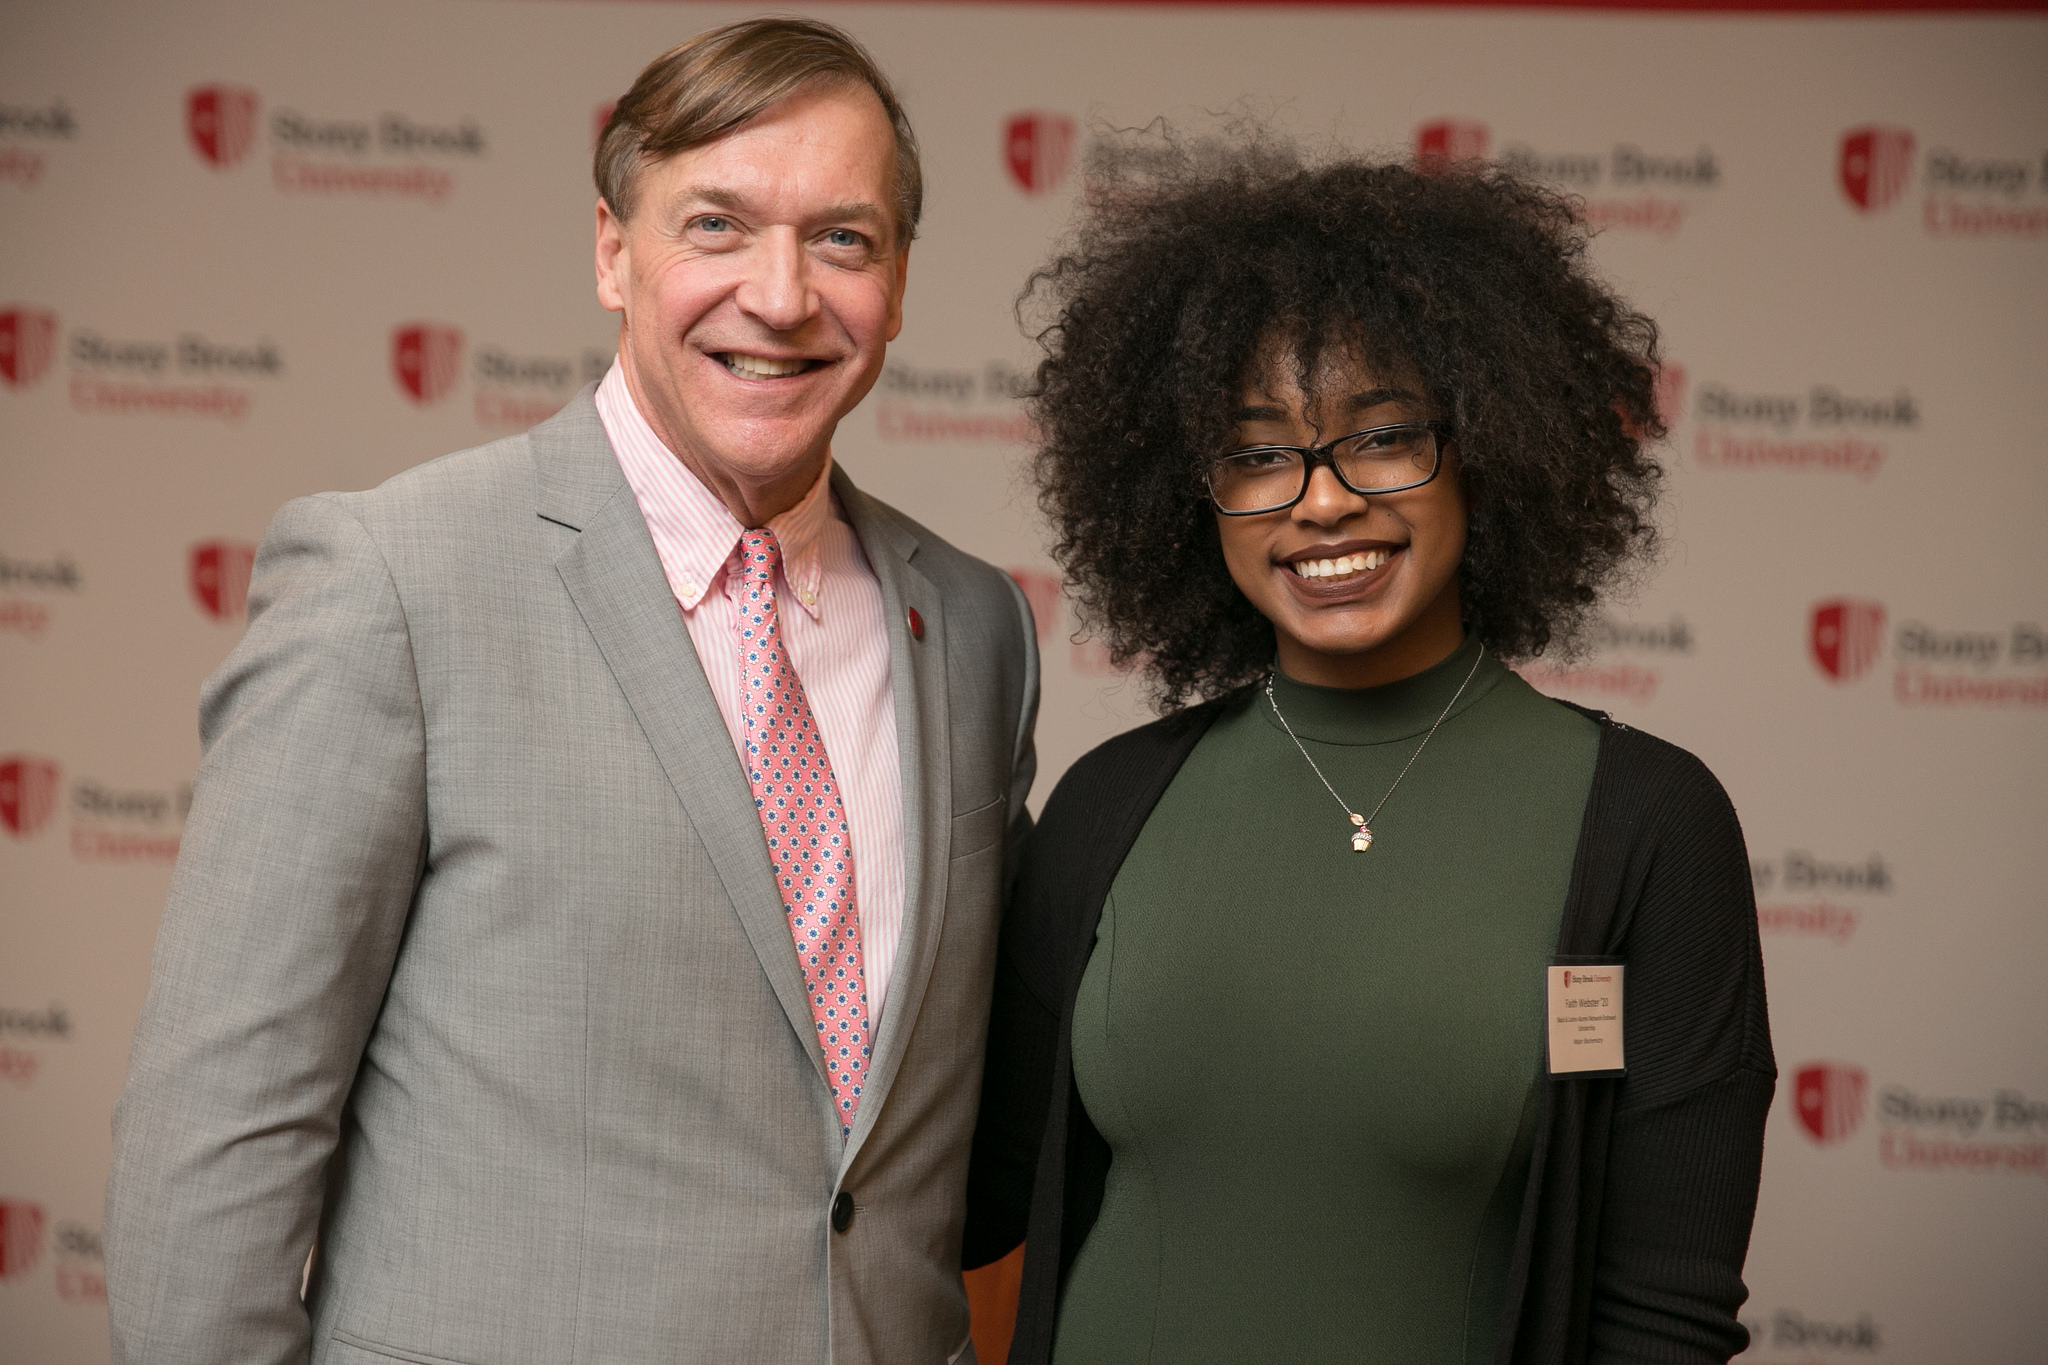 Grateful scholarship recipients and generous donors enjoyed making meaningful connections during the annual Scholarship Celebration on March 22, 2017. This event is a highlight for Stony Brook's scholarship donors and the students whose lives have been directly impacted by their generosity.